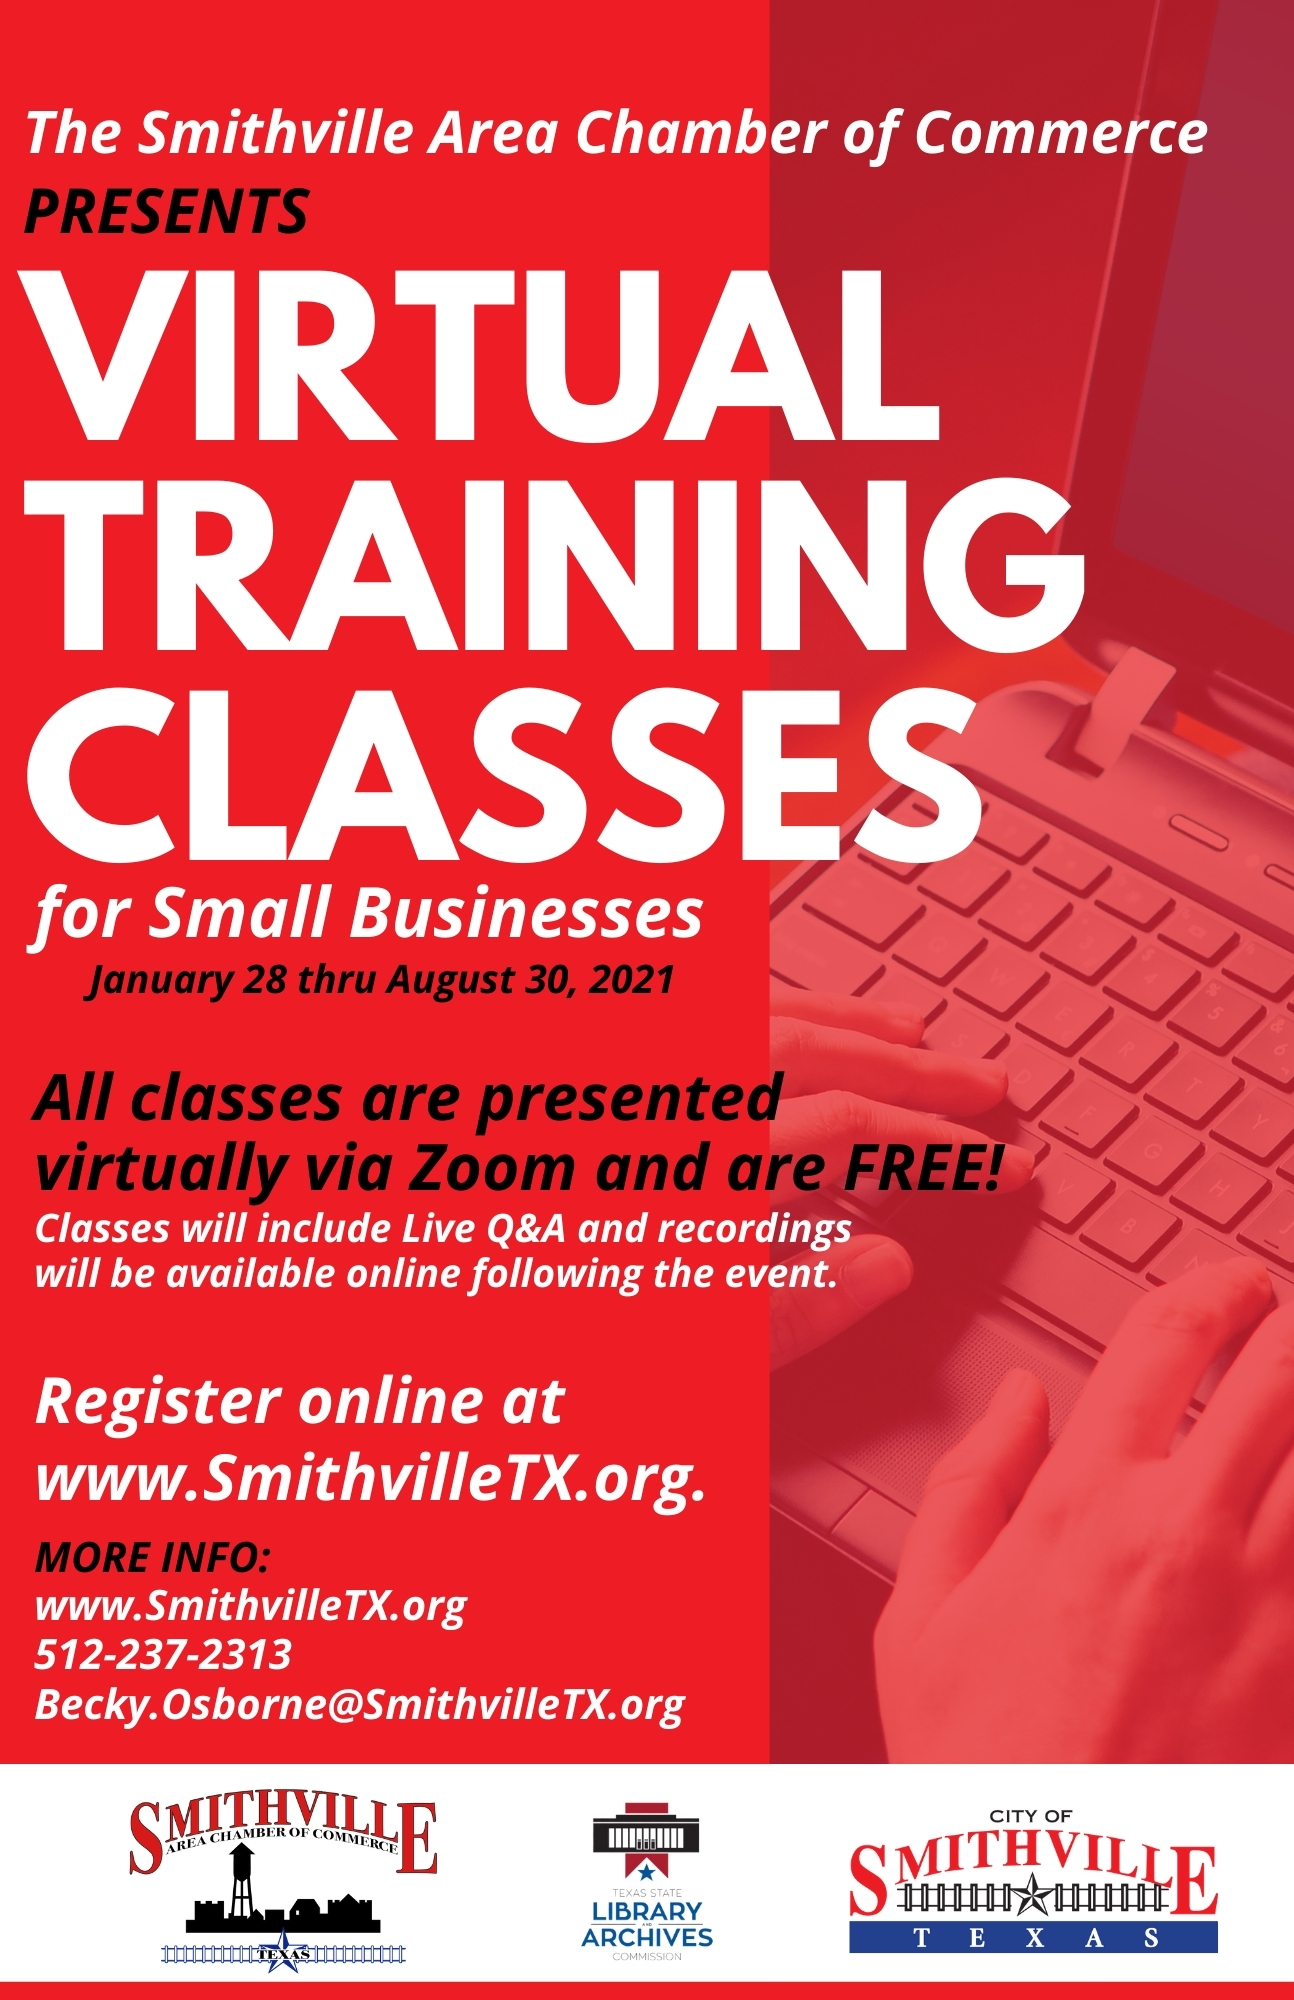 Virtual Training Classes Poster